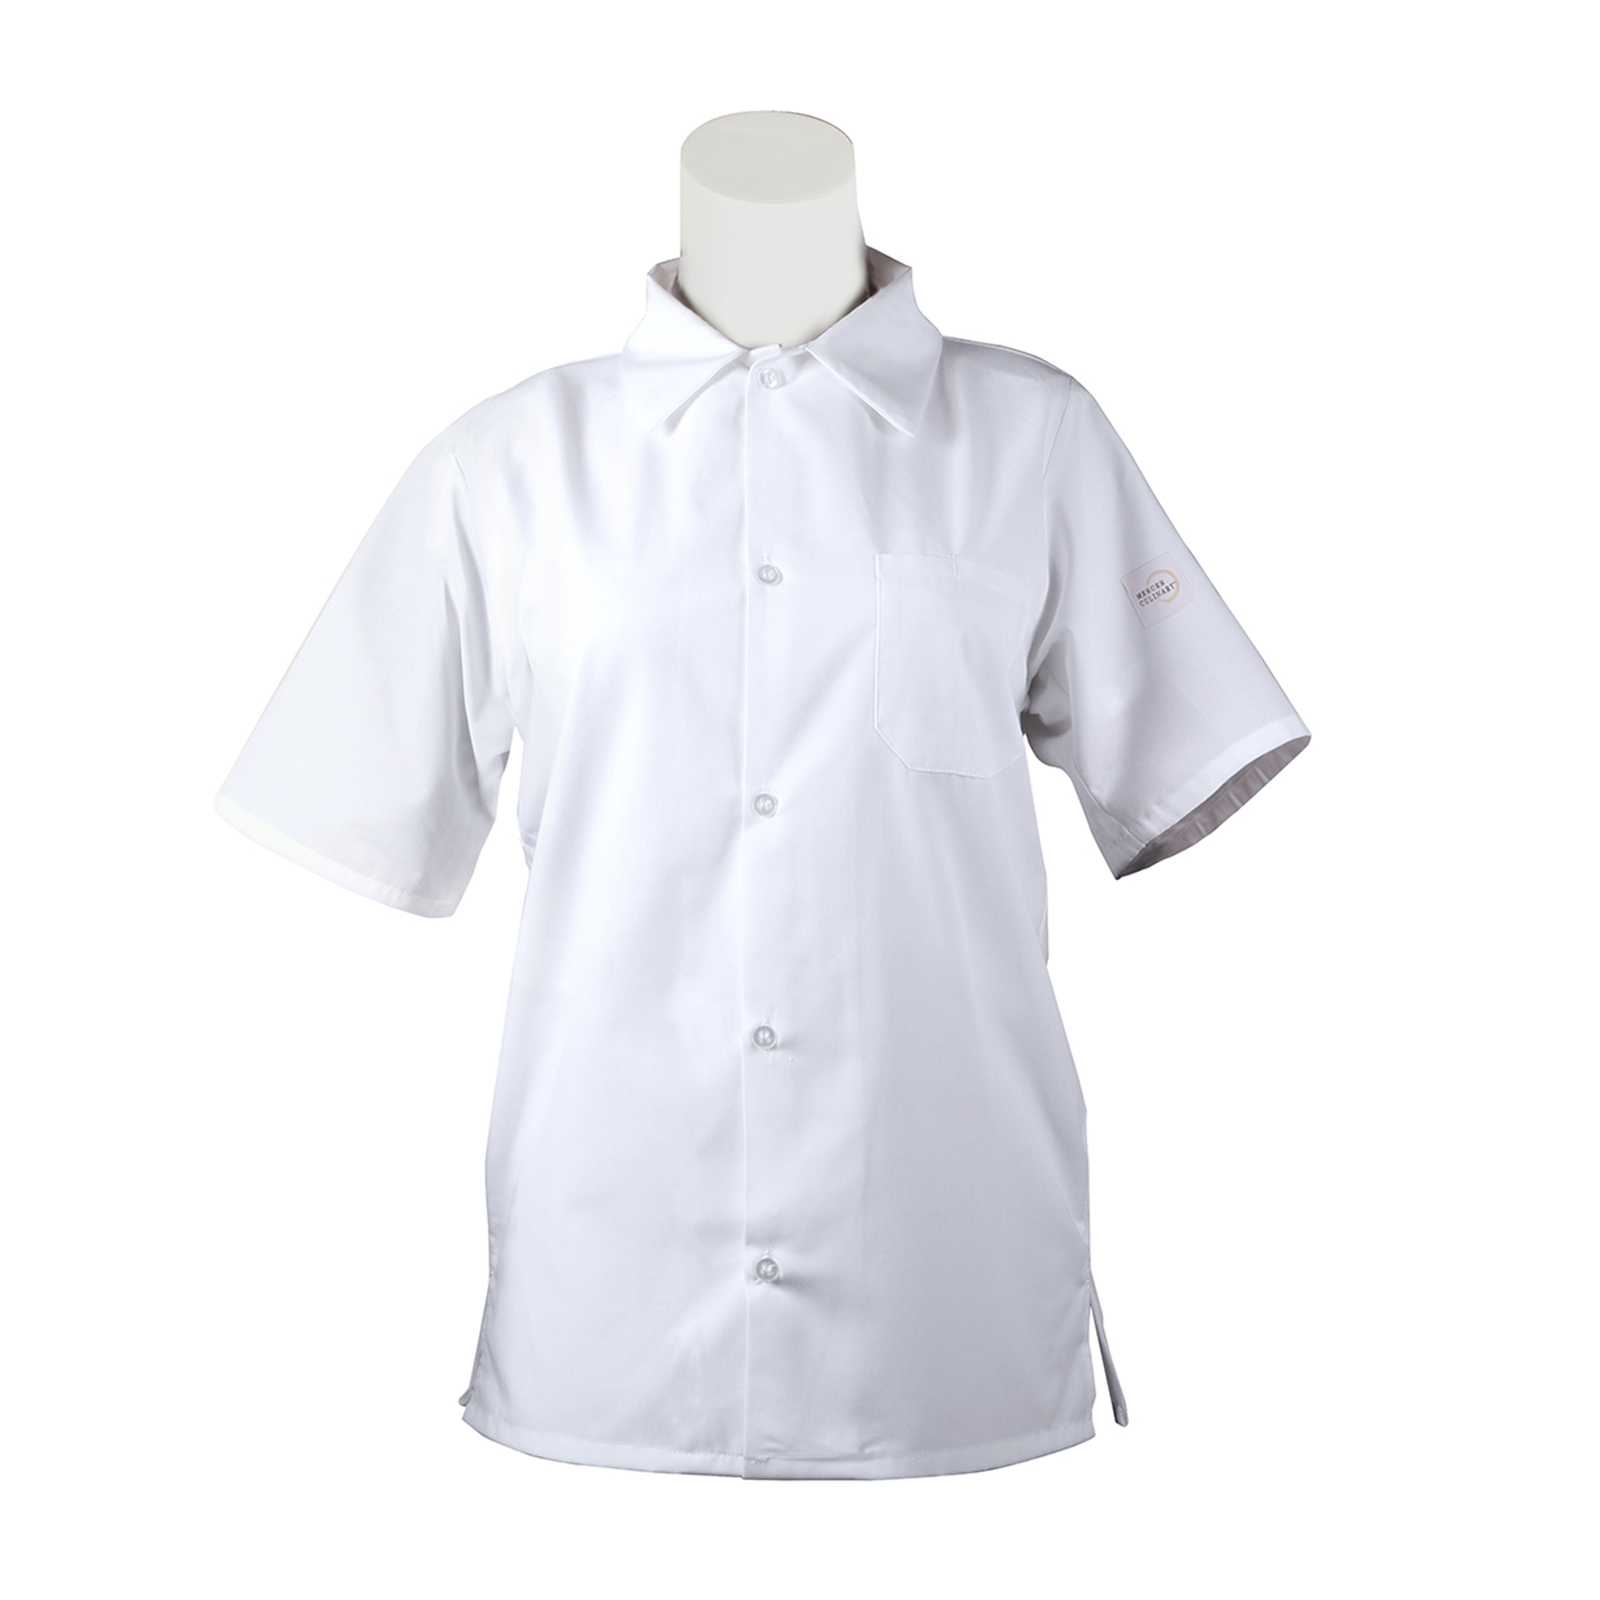 Mercer Culinary M60200WH4X cook's shirt